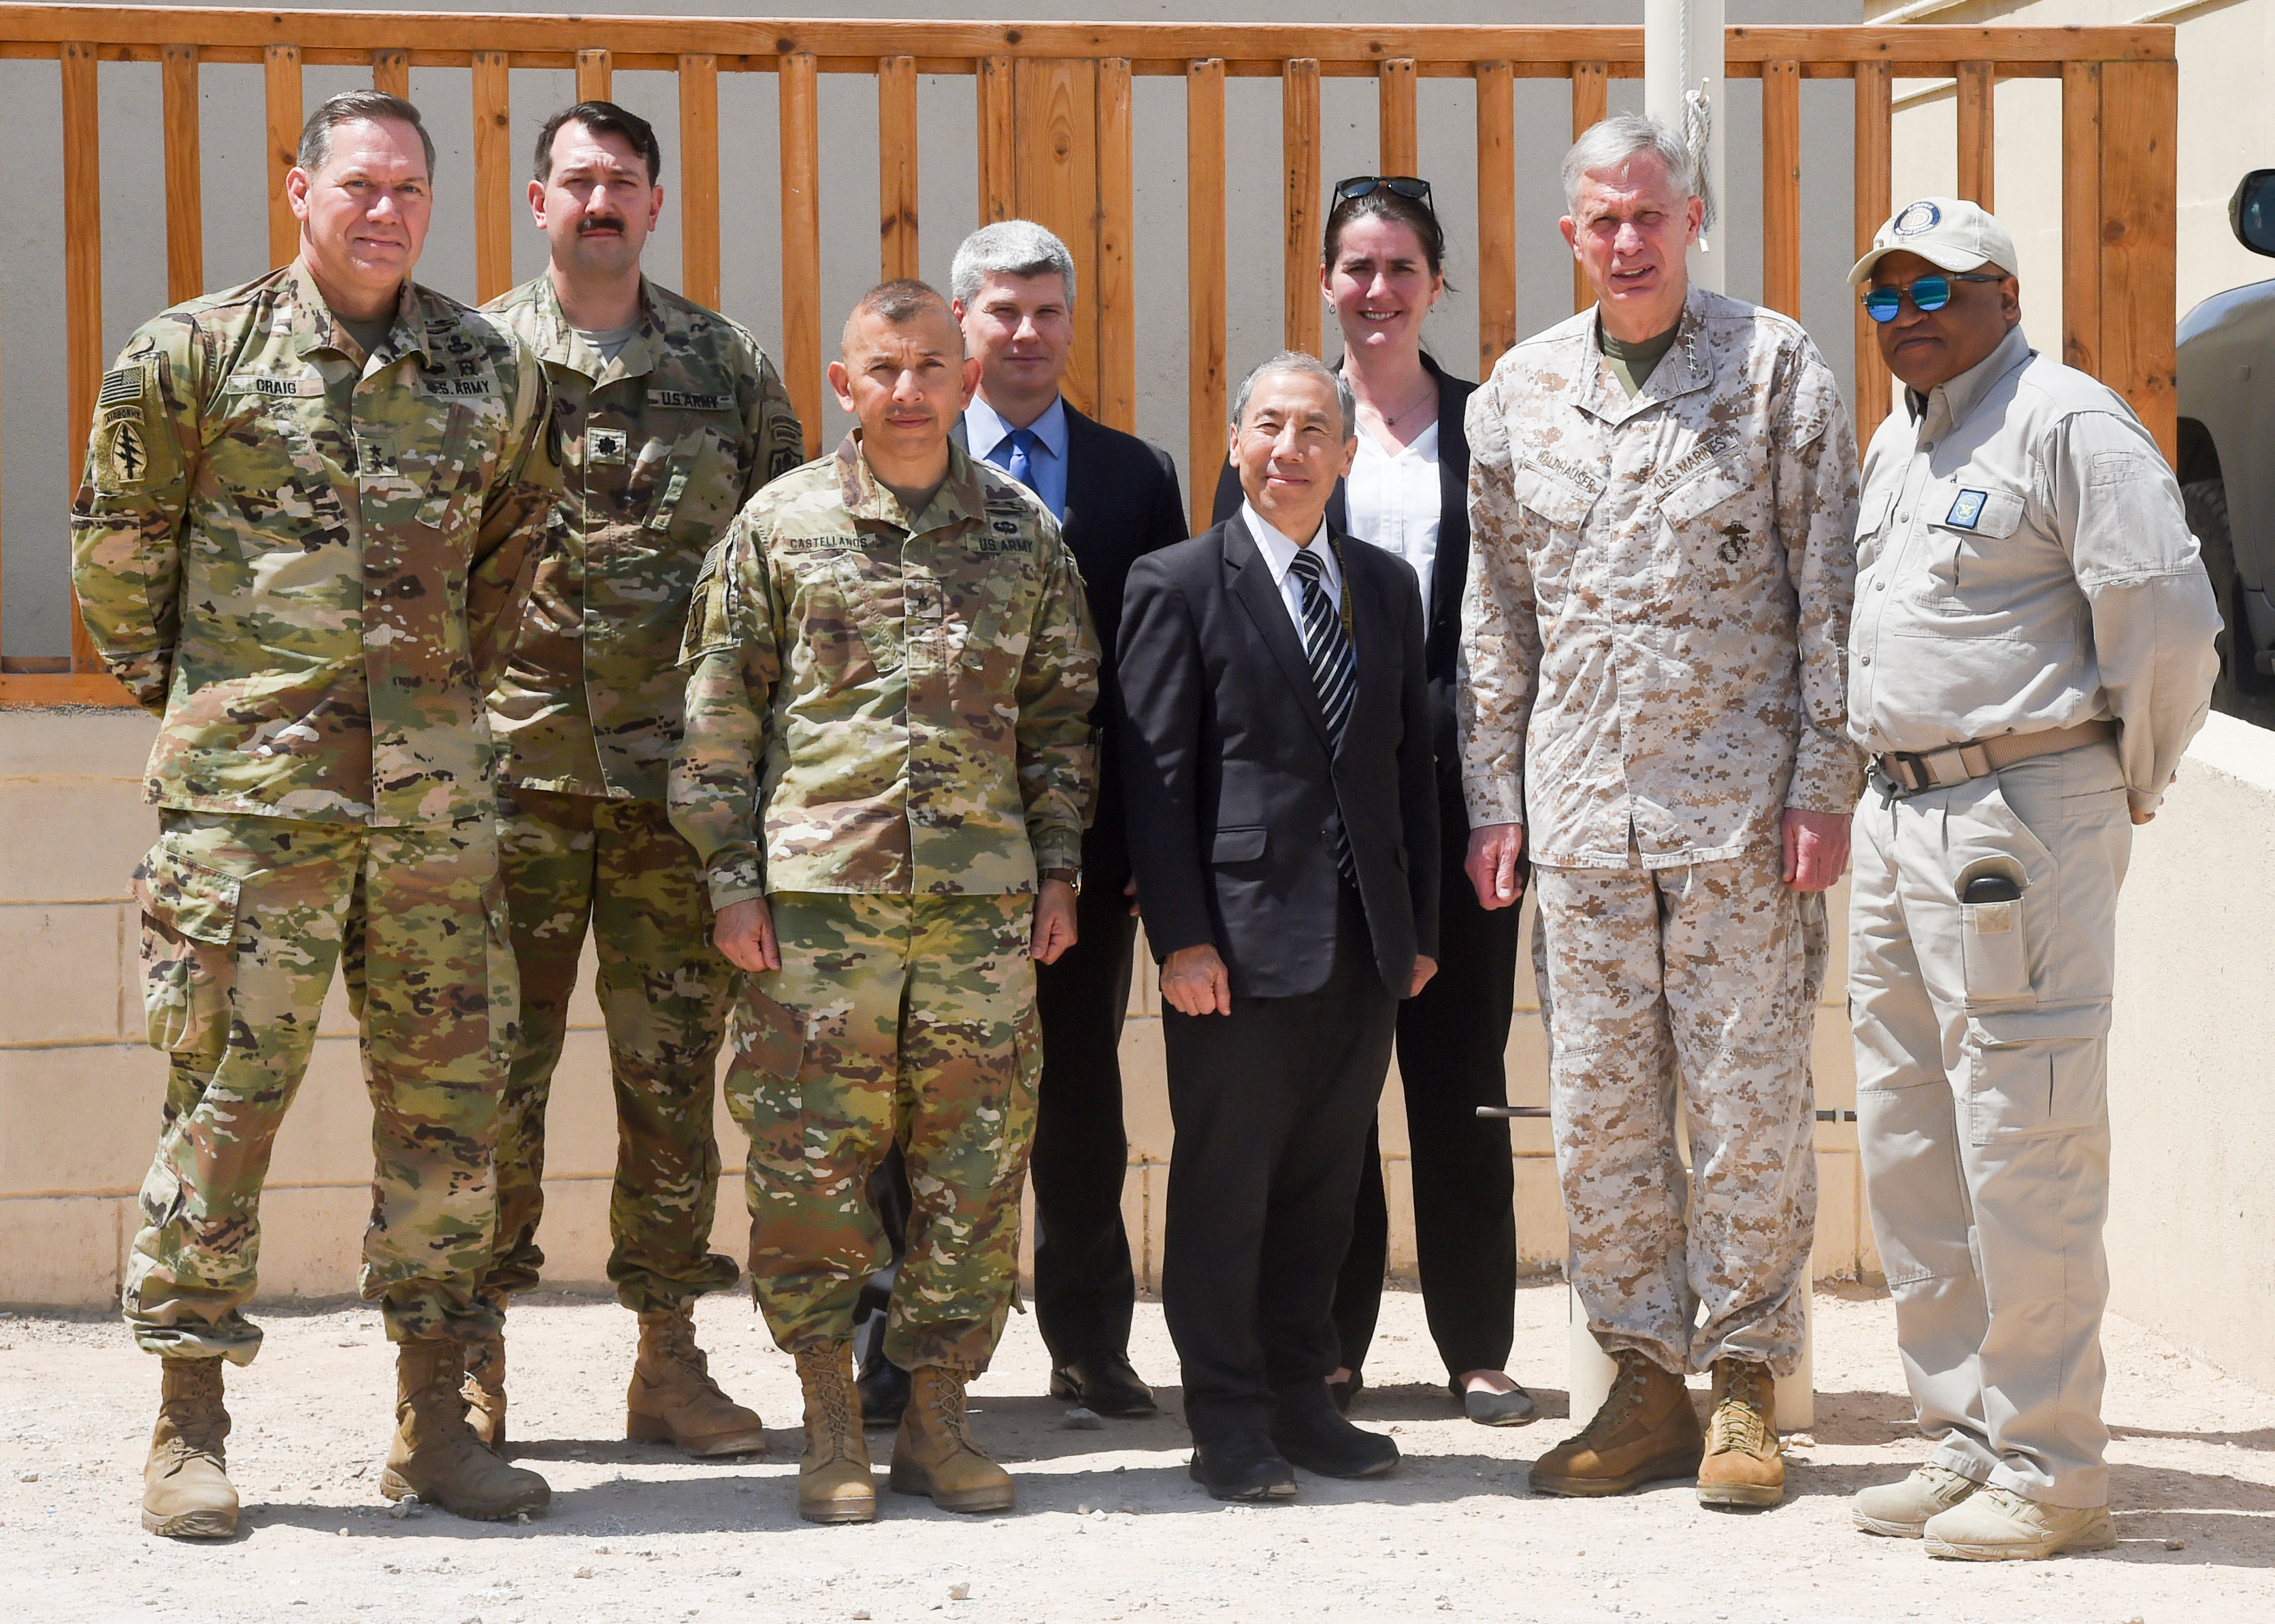 MOGADISHU, Somalia – U.S. Marine Gen. Thomas D. Waldhauser (right), commanding general, U.S. Africa Command,  U.S. Ambassador to Somalia Donald Yamamoto (center), and U.S. Army Major Gen. James D. Craig (left), commanding general, Combined Joint Task Force–Horn of Africa, pose for a photo with officers and U.S. officials in Mogadishu, Somalia Nov. 27, 2018. During his visit to Mogadishu Waldhauser also met with Somali President Mohamed Abdullahi Mohamed to discuss development, security and stability in Somalia. 